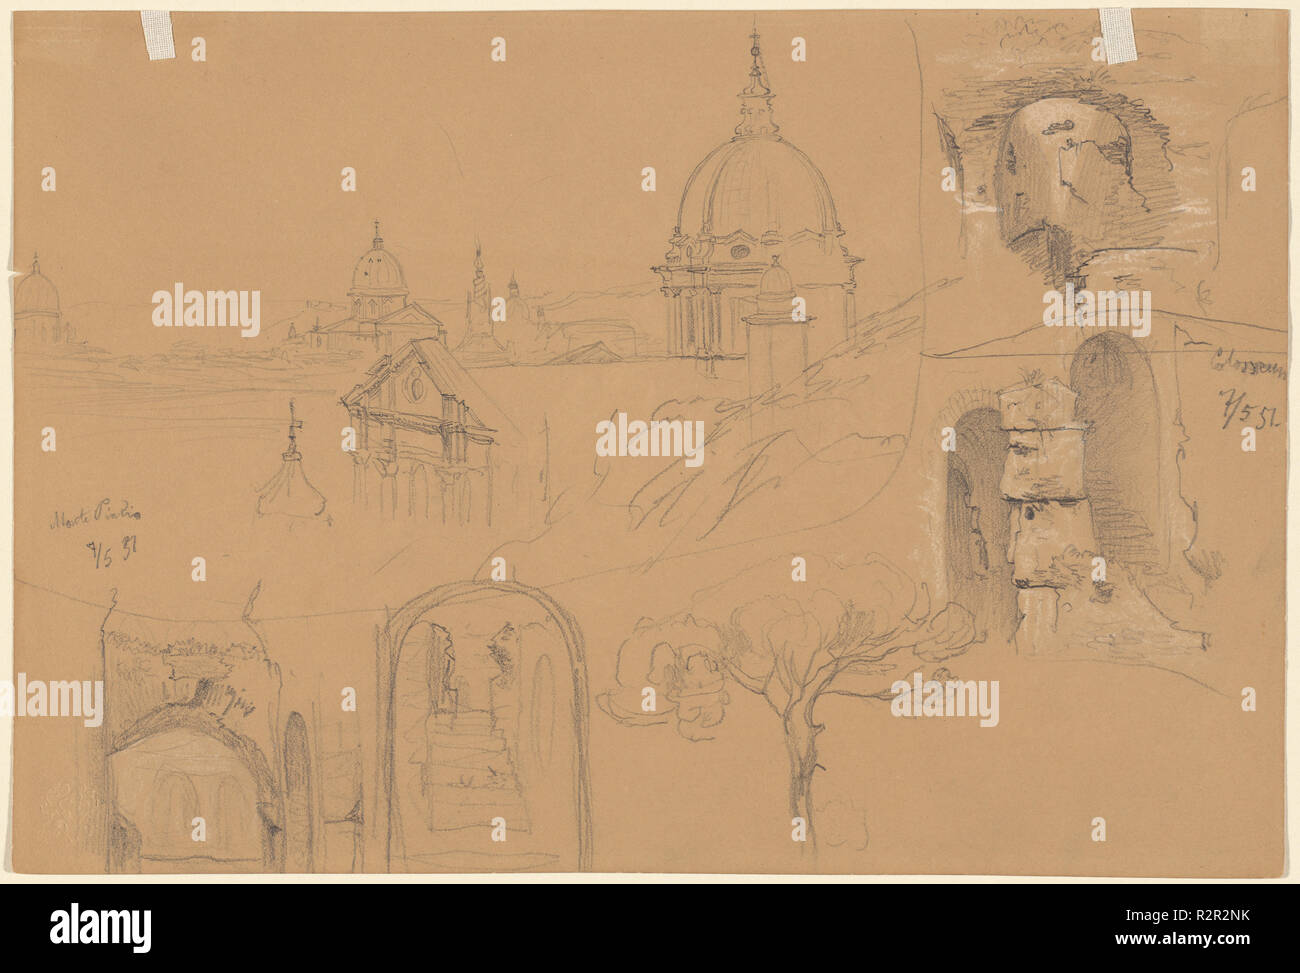 Studies of the Colosseum and Monte Pincio (verso). Dated: 1851. Dimensions: sheet: 17.2 × 25.2 cm (6 3/4 × 9 15/16 in.). Medium: graphite with white heightening on brown paper. Museum: National Gallery of Art, Washington DC. Author: Julius Jacob the Elder. - Stock Image